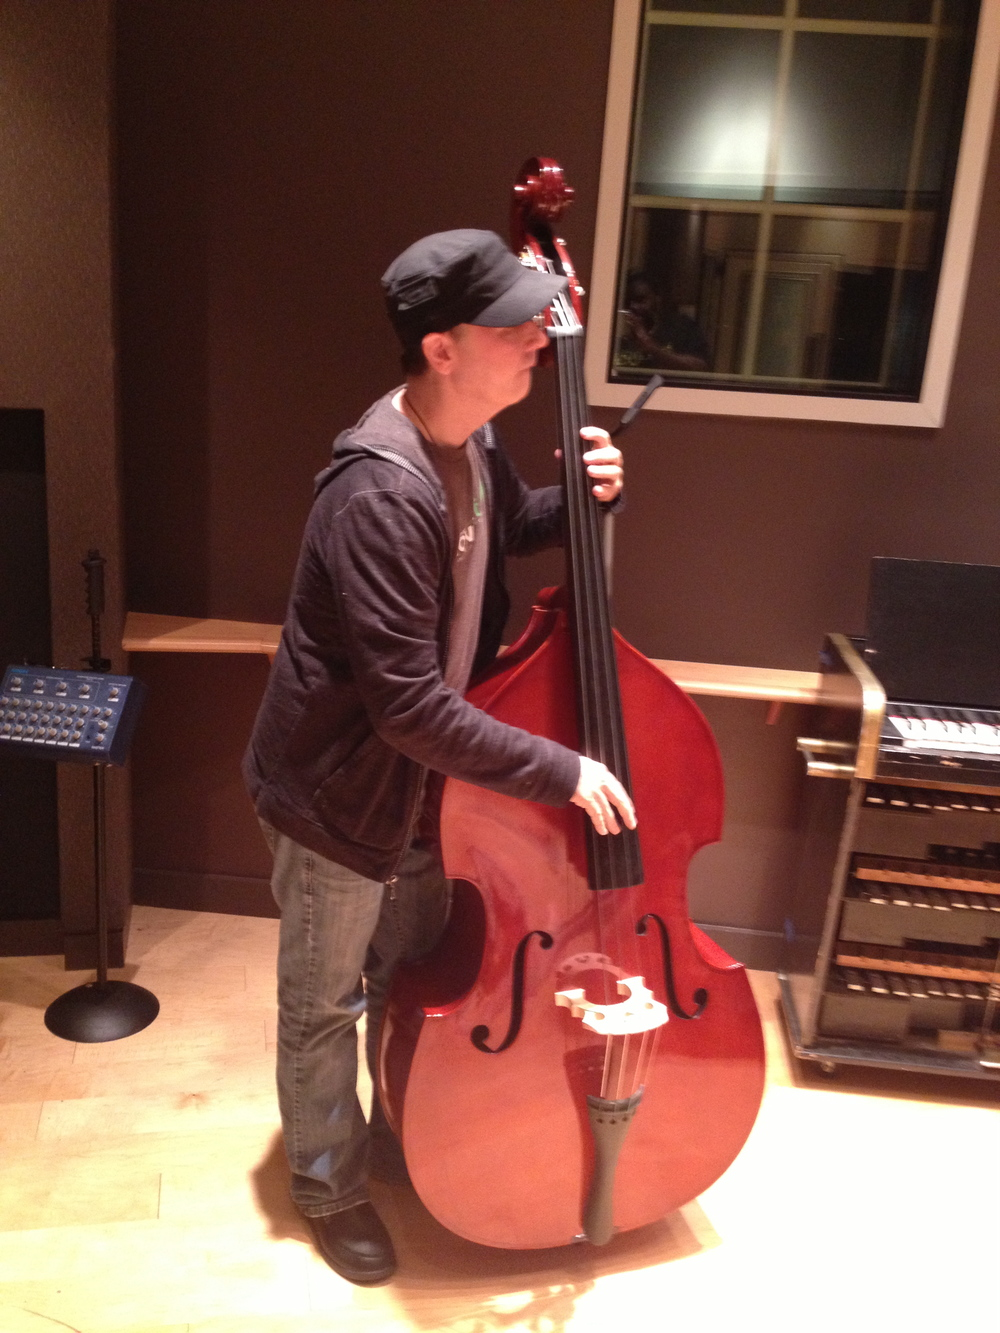 Producer/ Bassist Joseph Patrick Moore on the upright